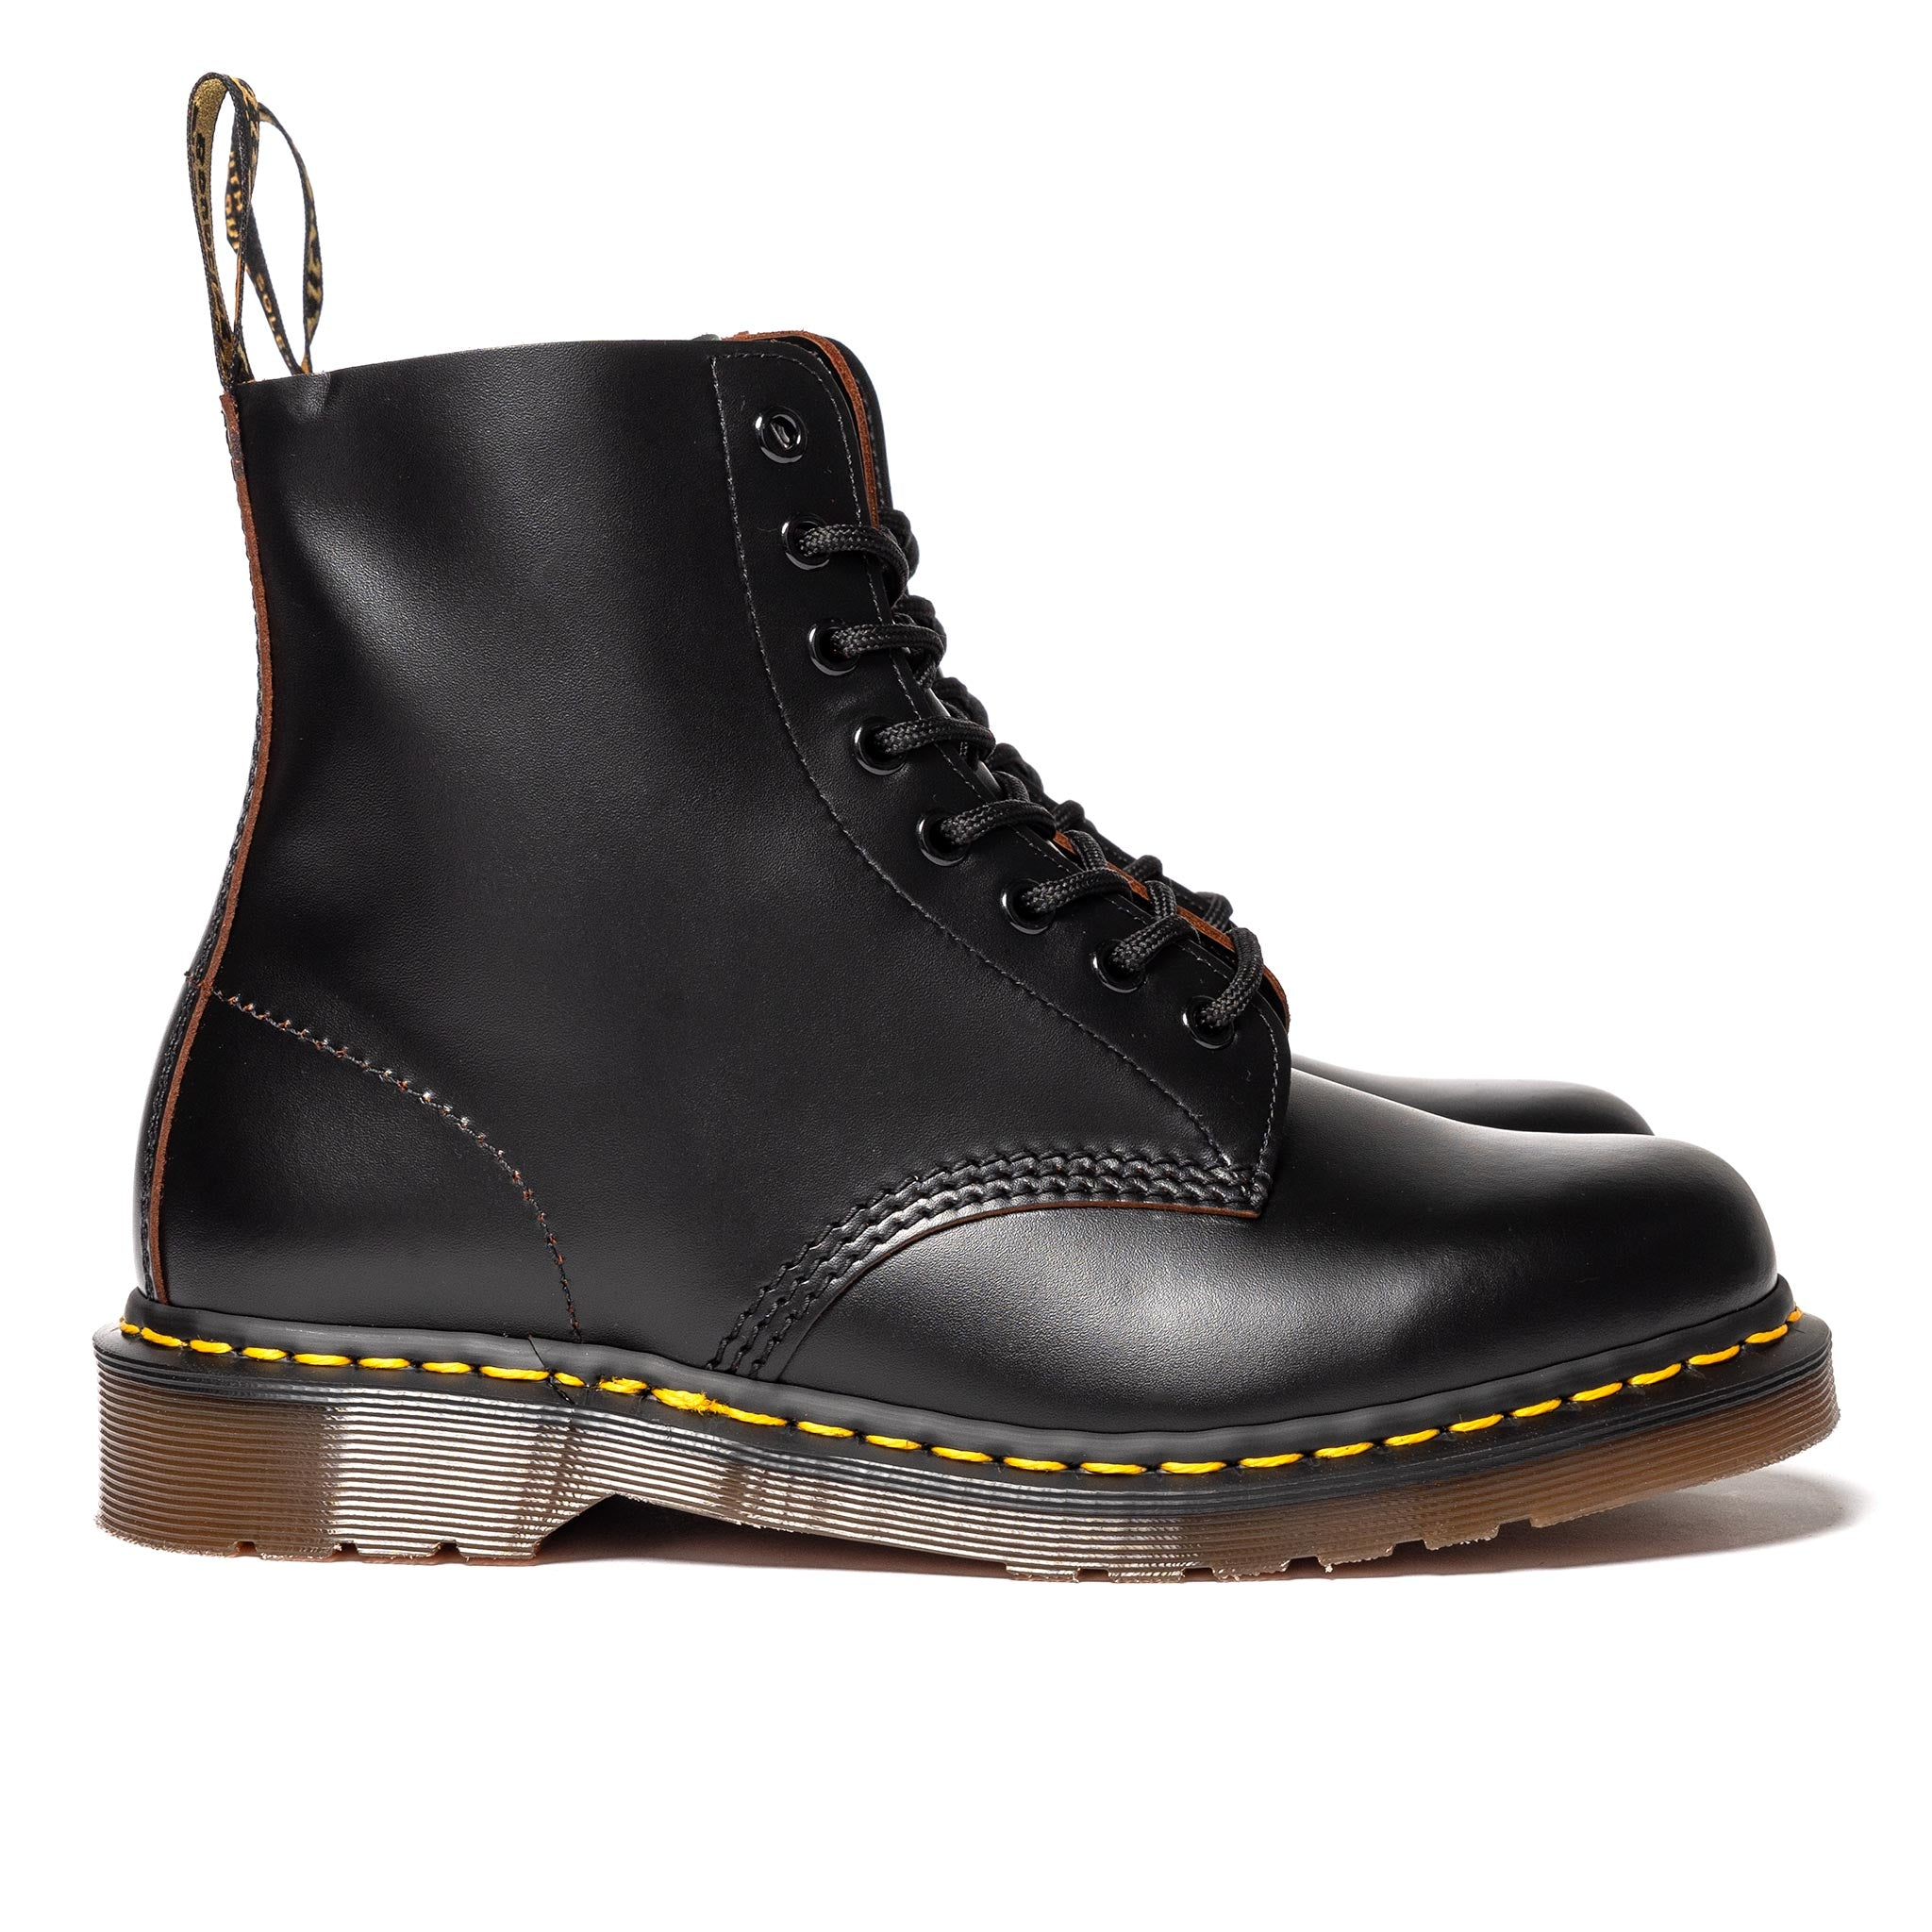 1460 Vintage Made In England Lace Up